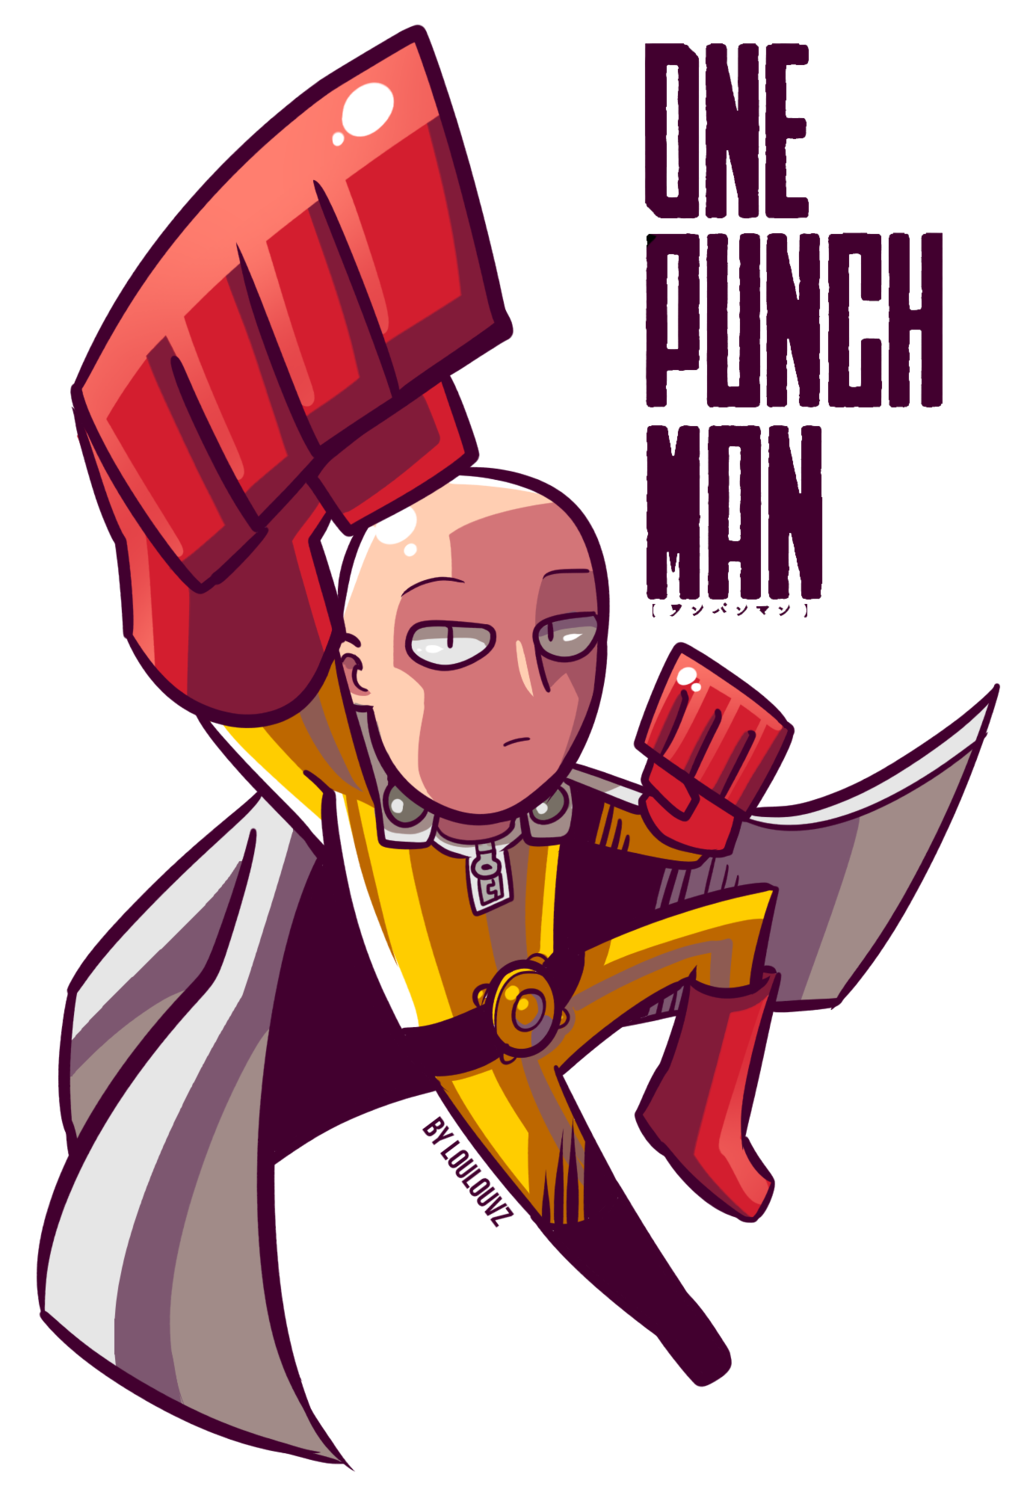 One Punch Man Logo Png - One Punch Man PNG Images Transparent Free Download | PNGMart.com